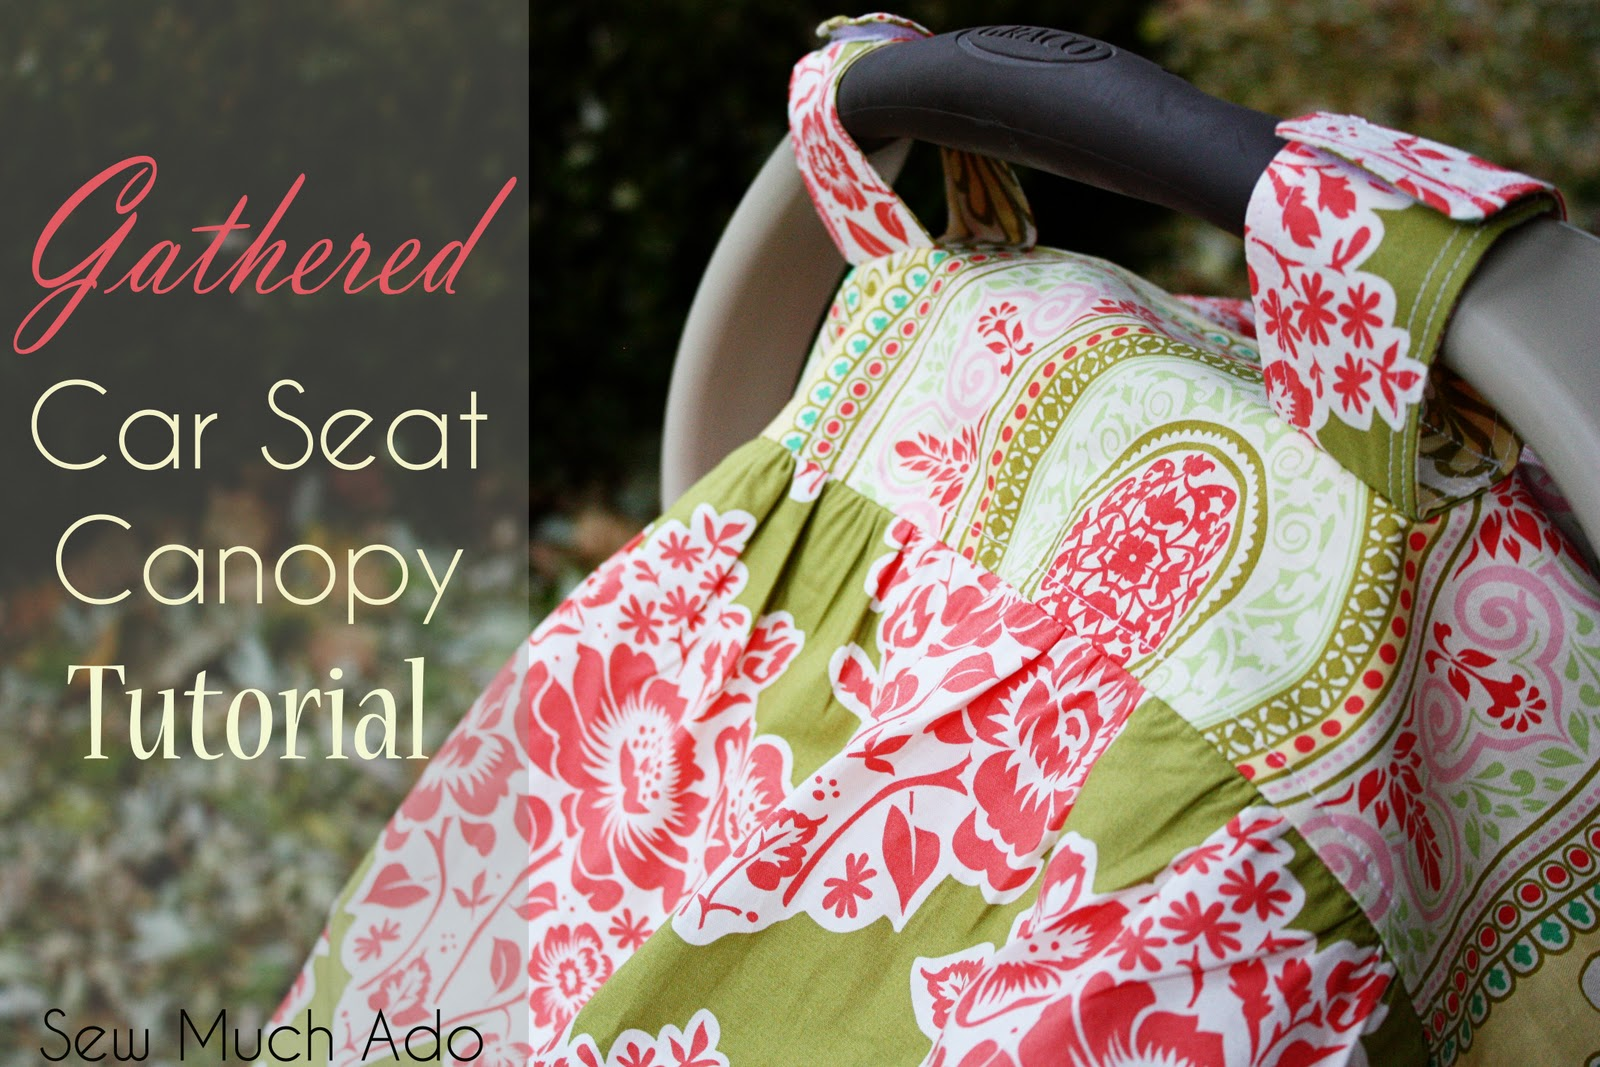 Gathered Car Seat Canopy Tutorial - Sew Much Ado